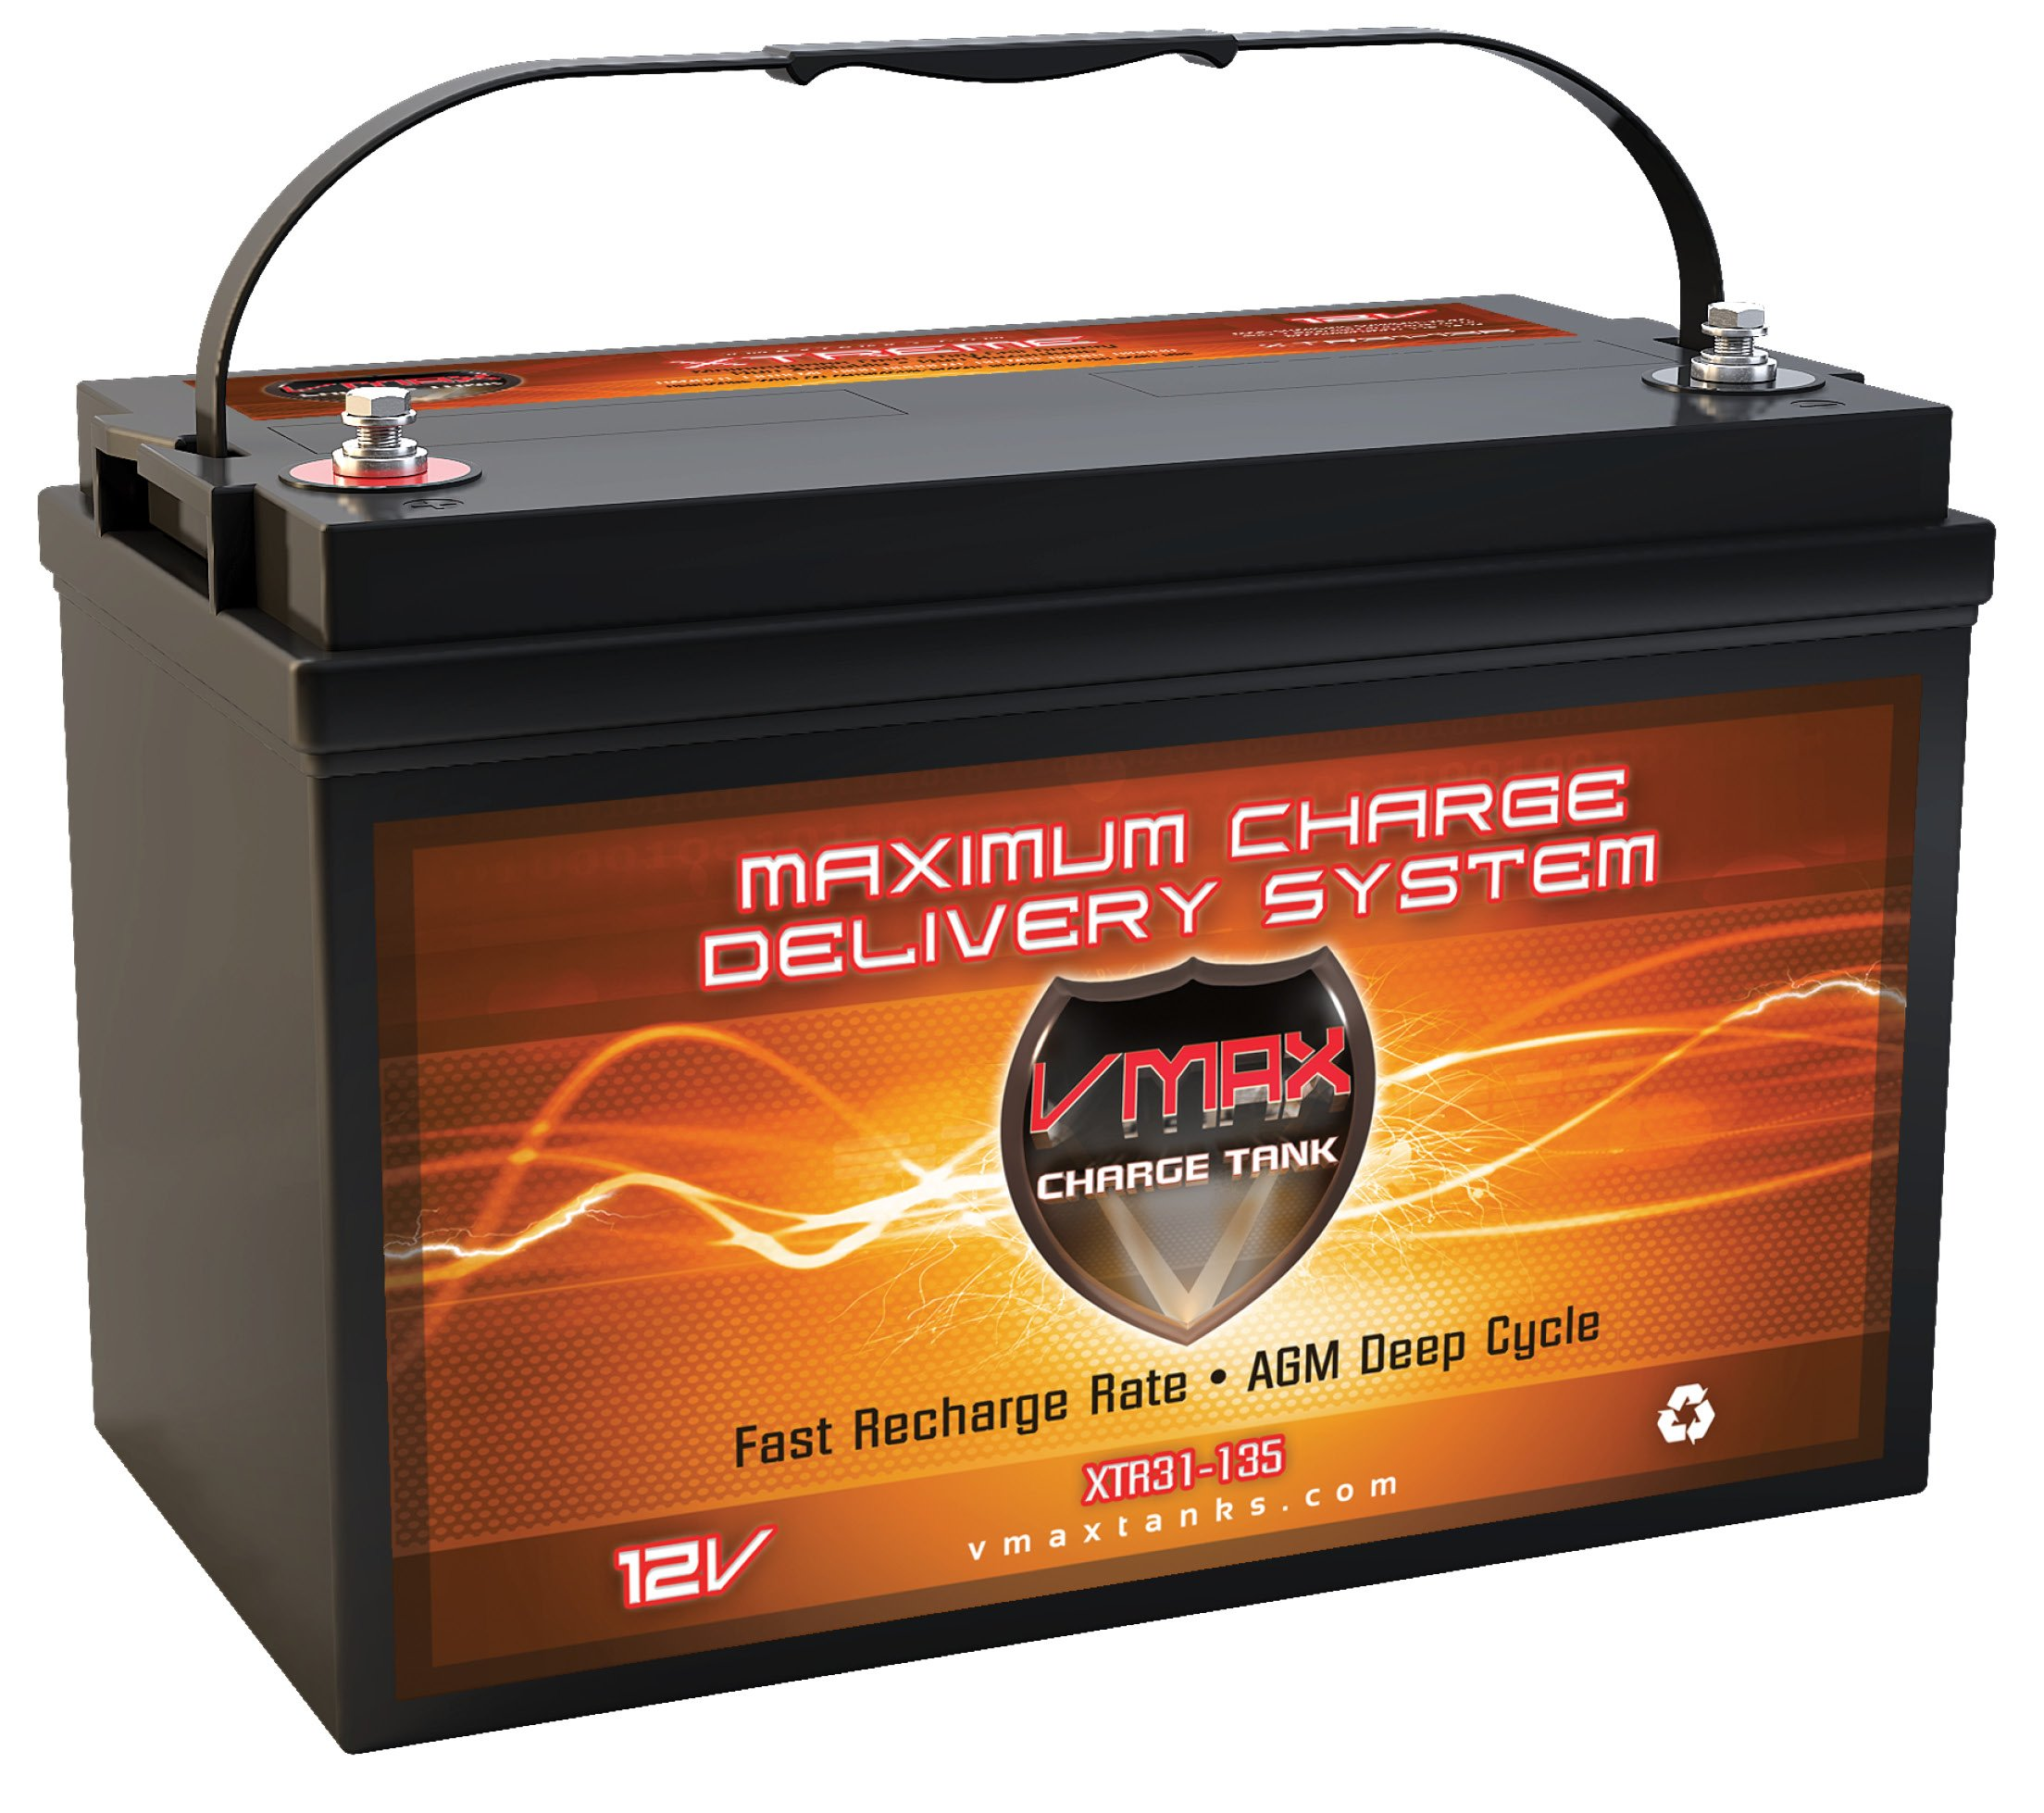 VMAX XTR31 135 Battery Sealed Camper